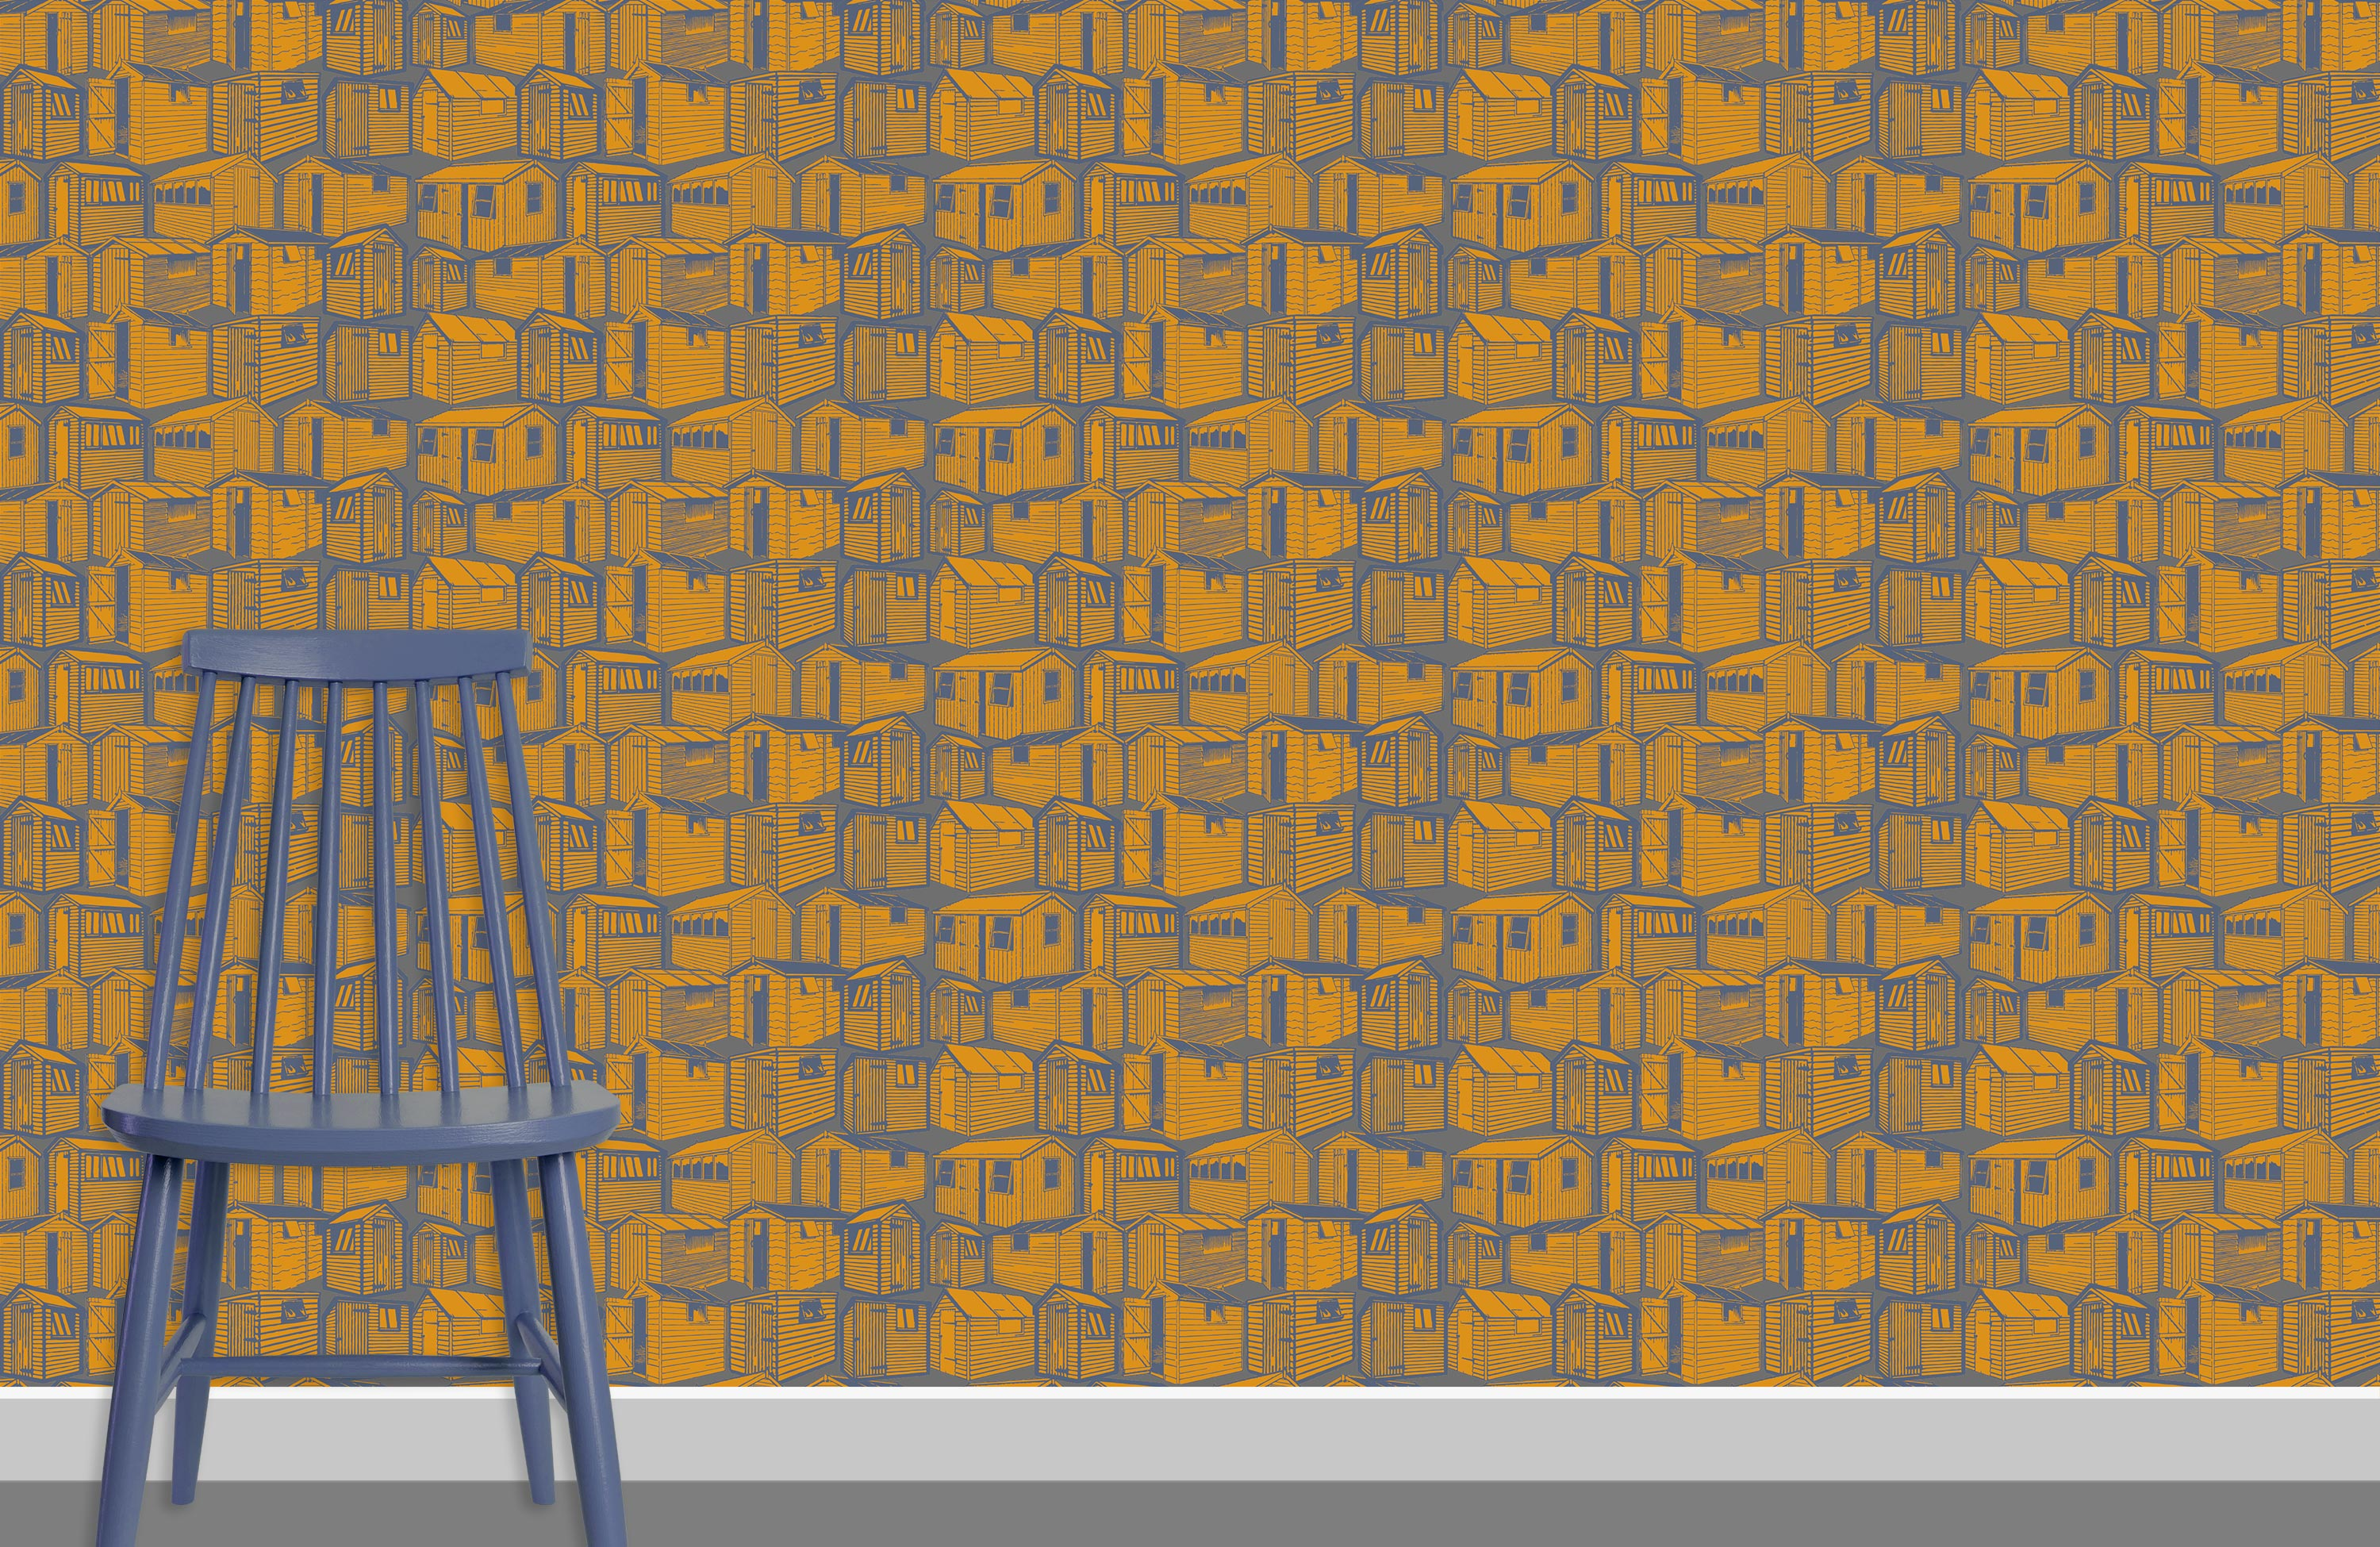 Sheds Pattern Design N12on8 1